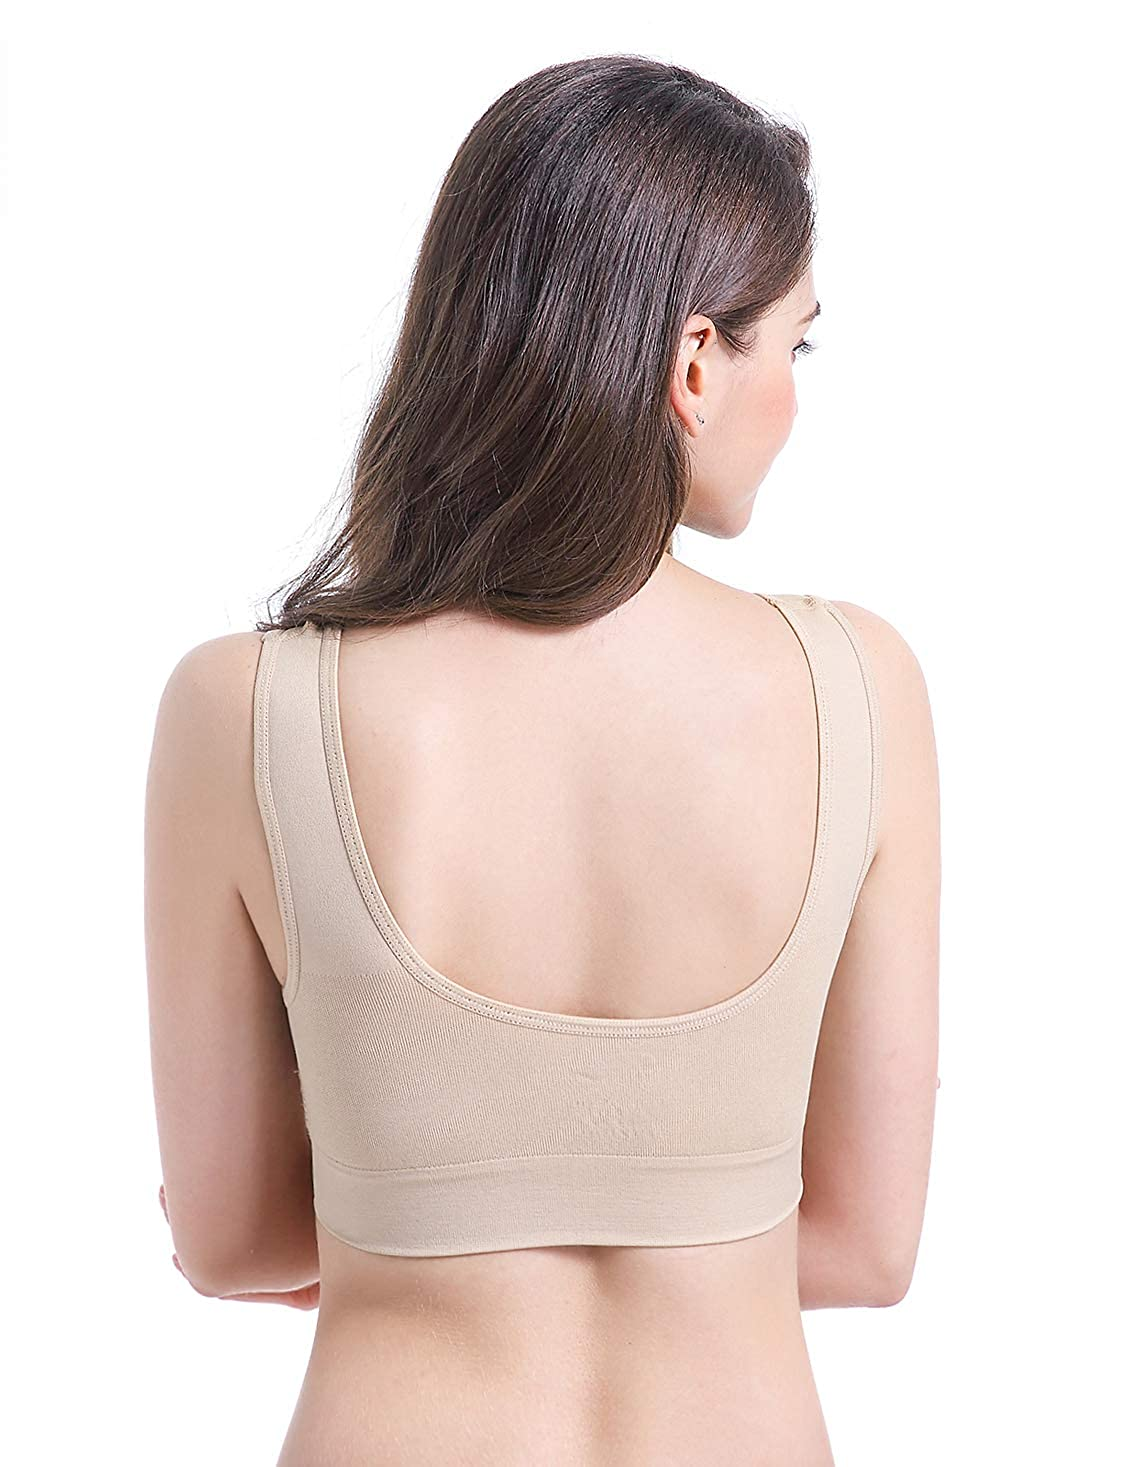 Comfort Seamless Wireless Stretchy Sports Bra,3 Pack Yoga Bras with Removable Pads PRETTYWELL Sleep Bras for Women